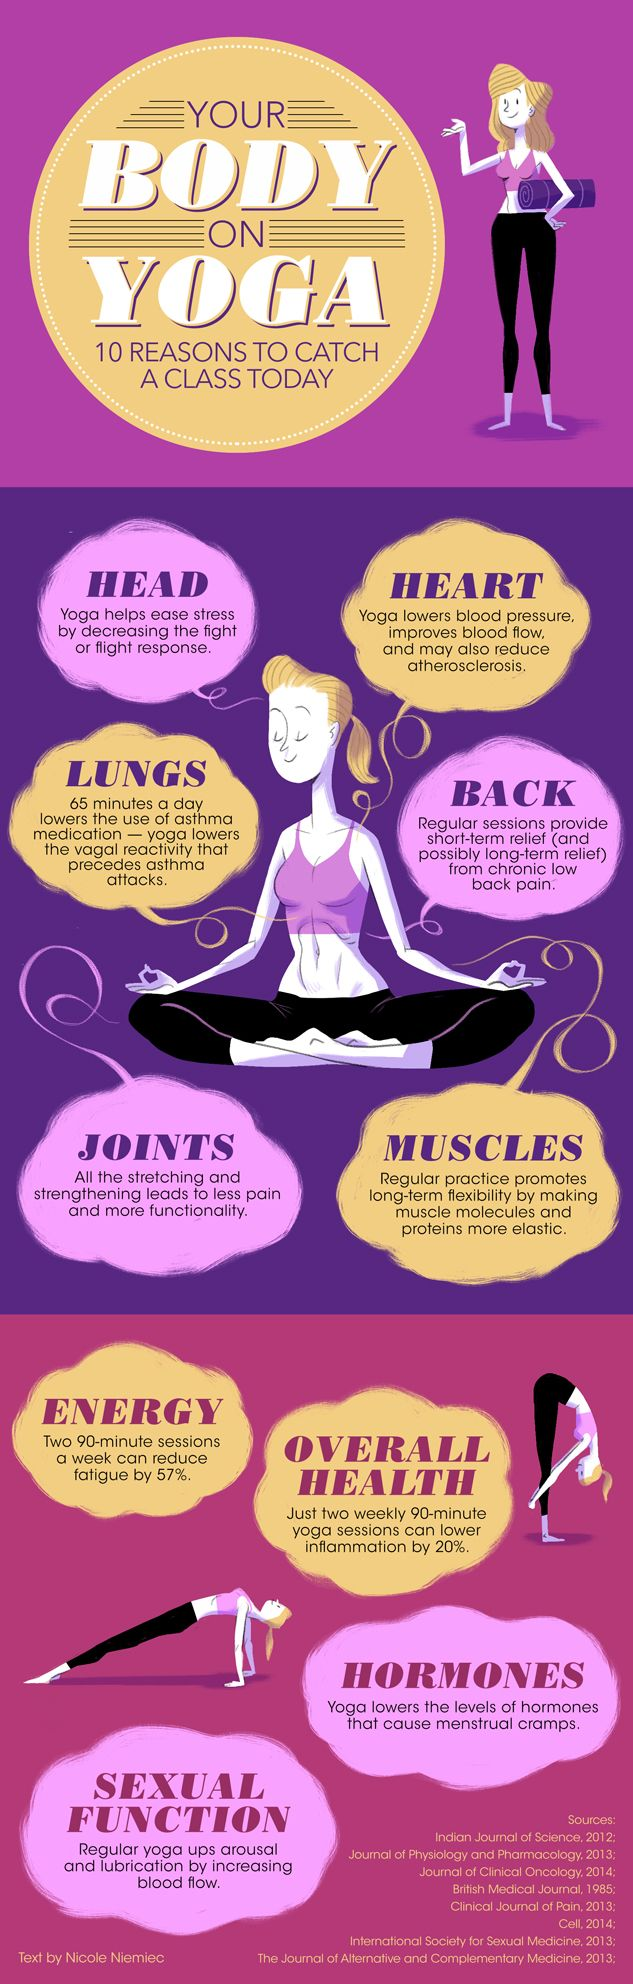 Your Body On Yoga #healthy #strong